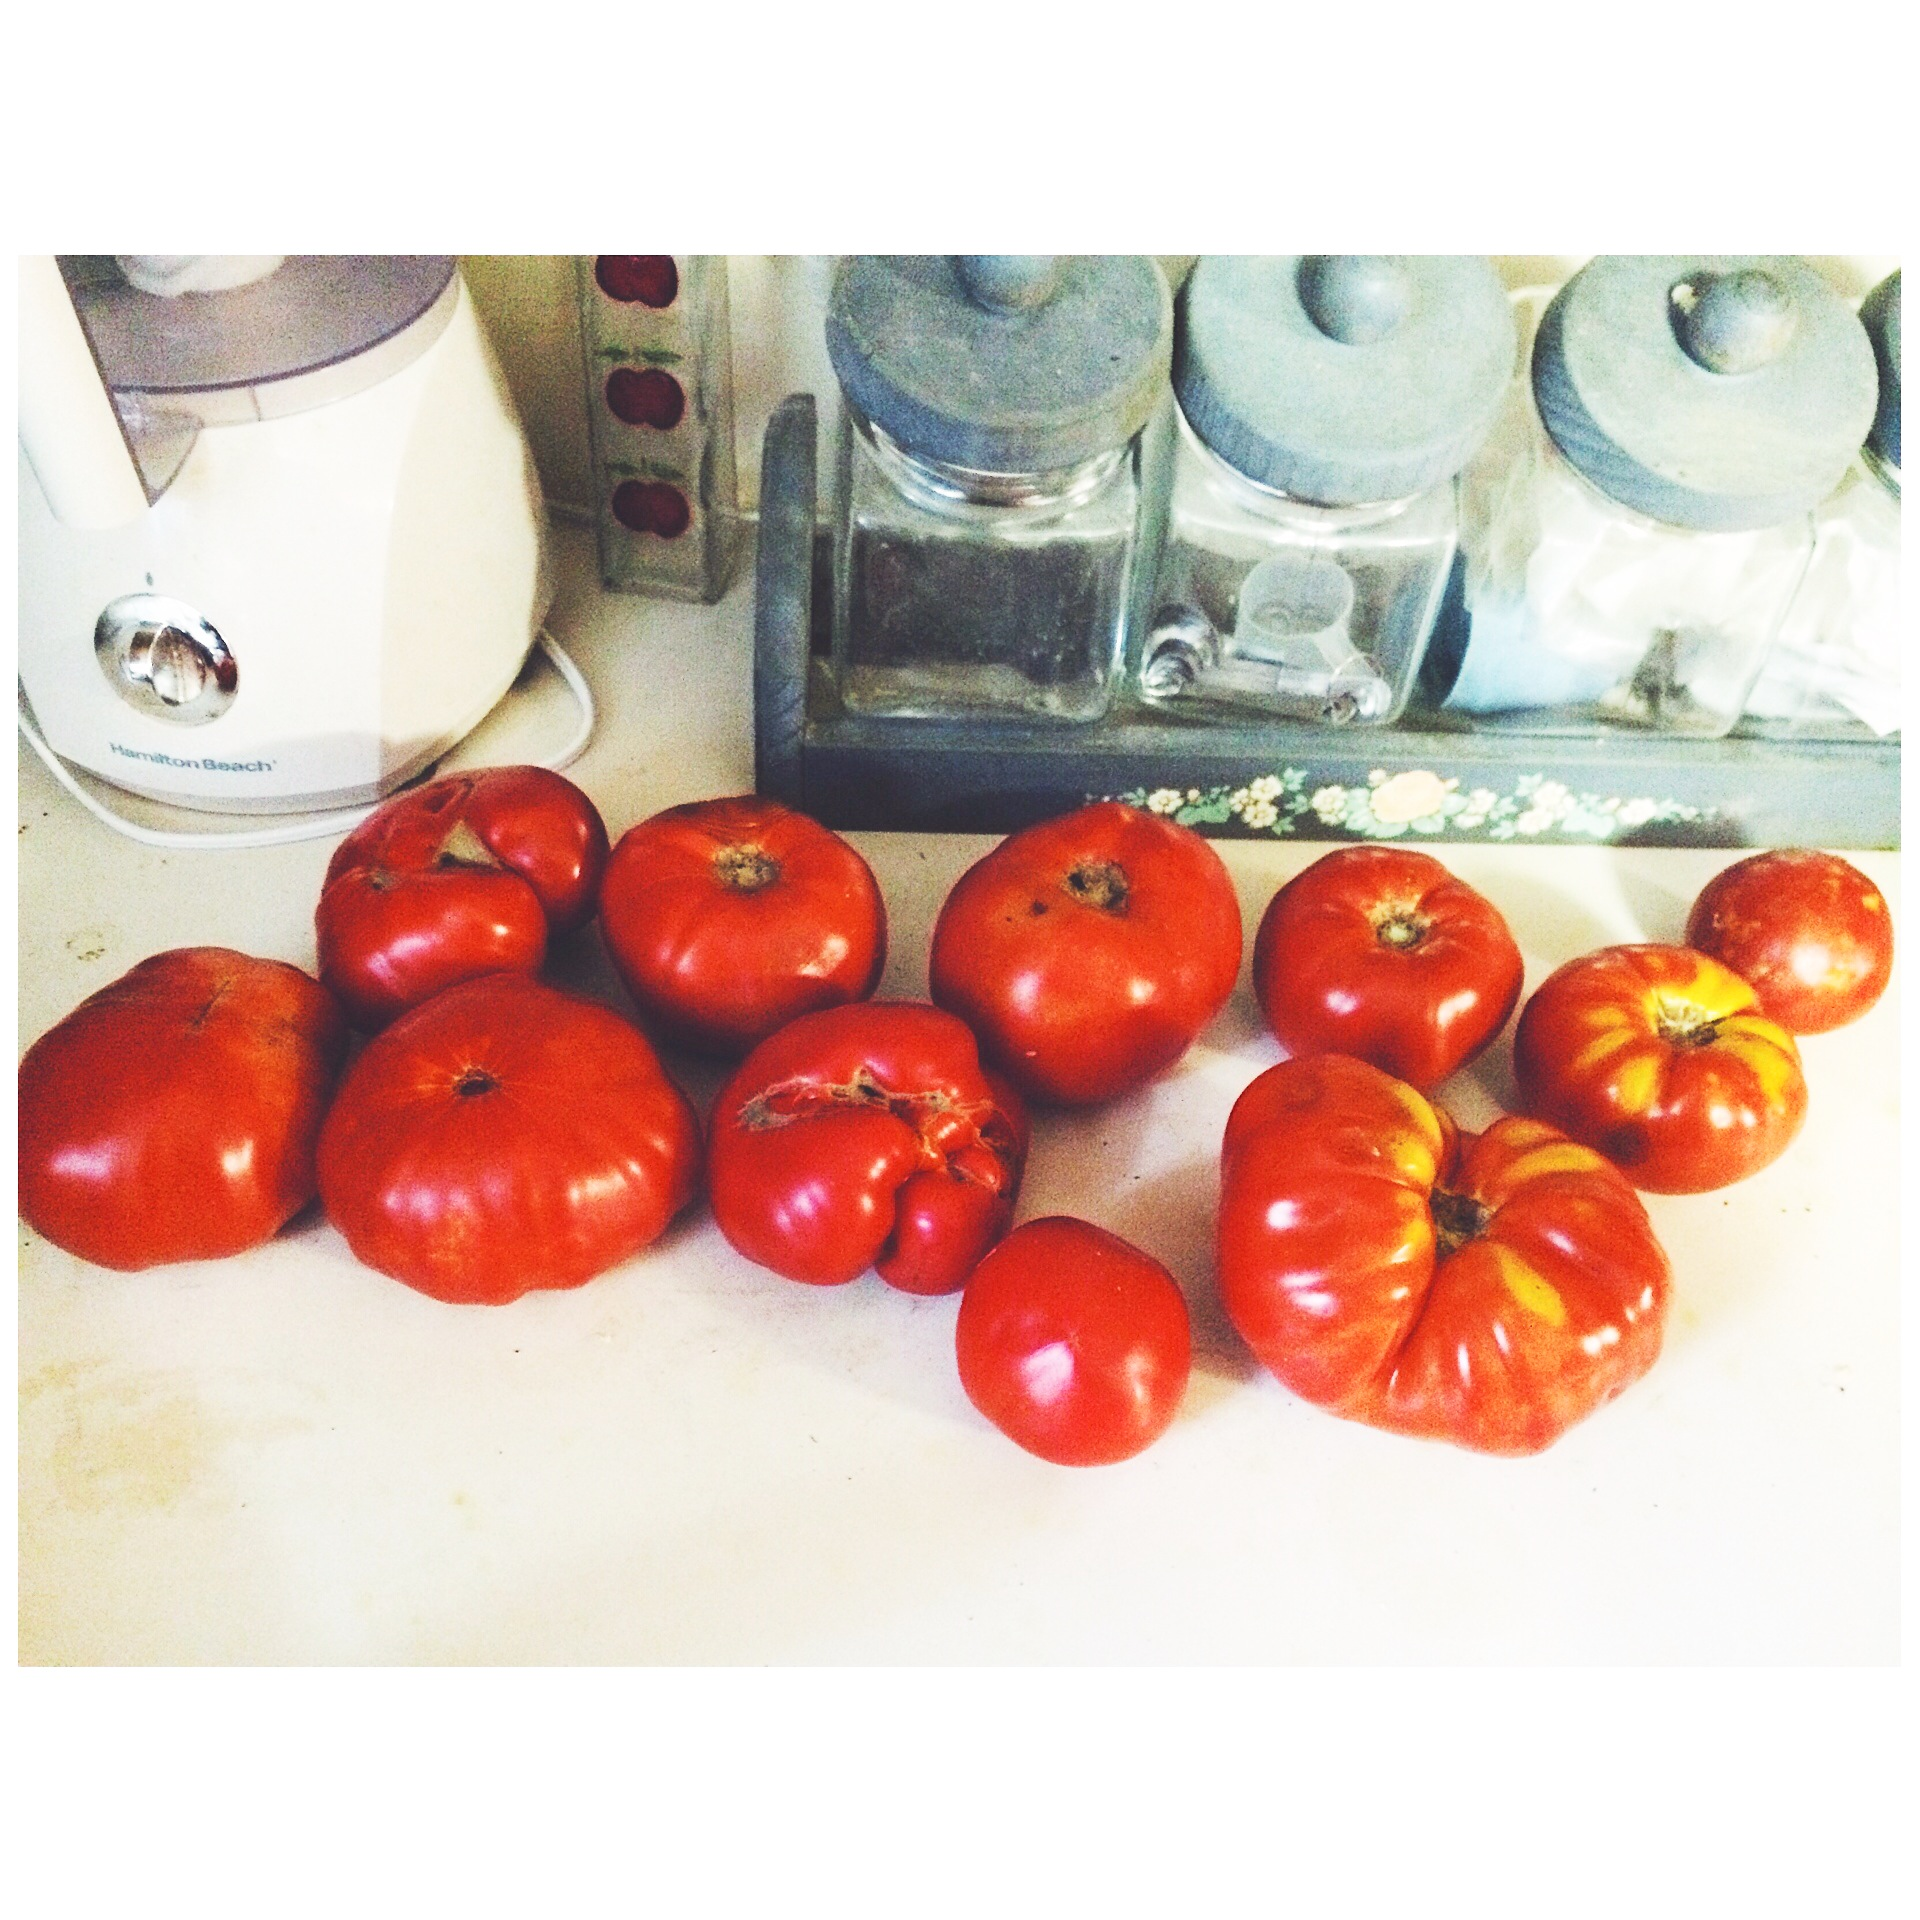 Real tomatoes look like this.